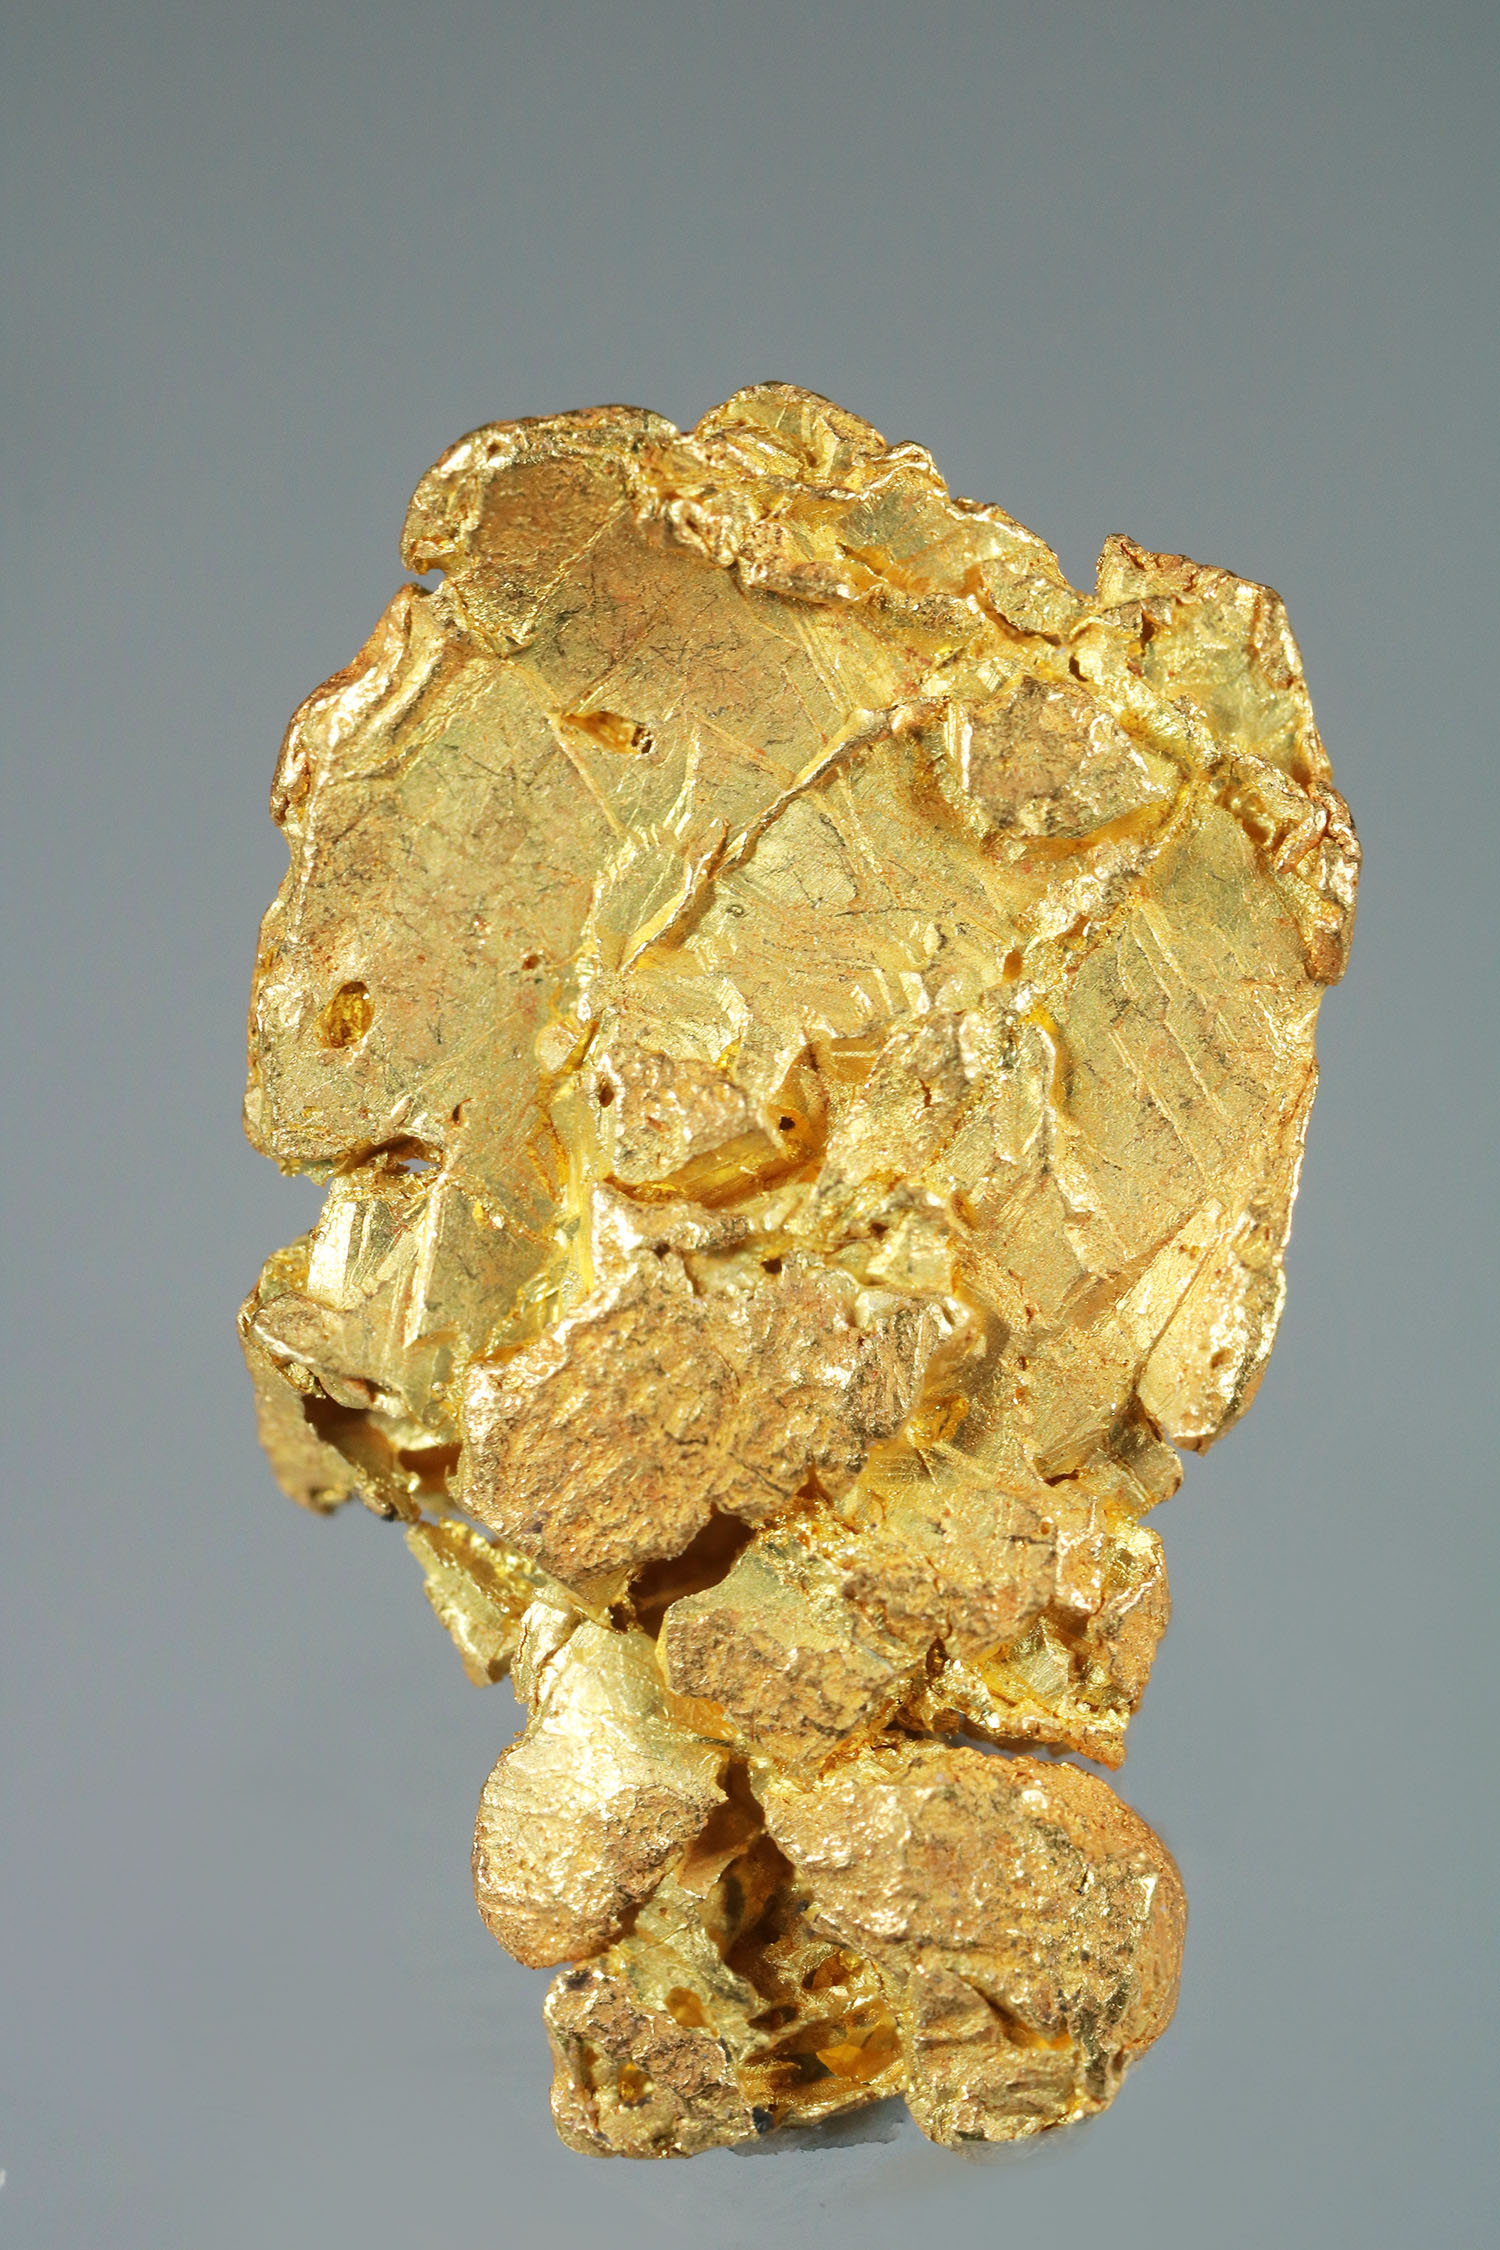 Crystallized plate Gold from the Yukon